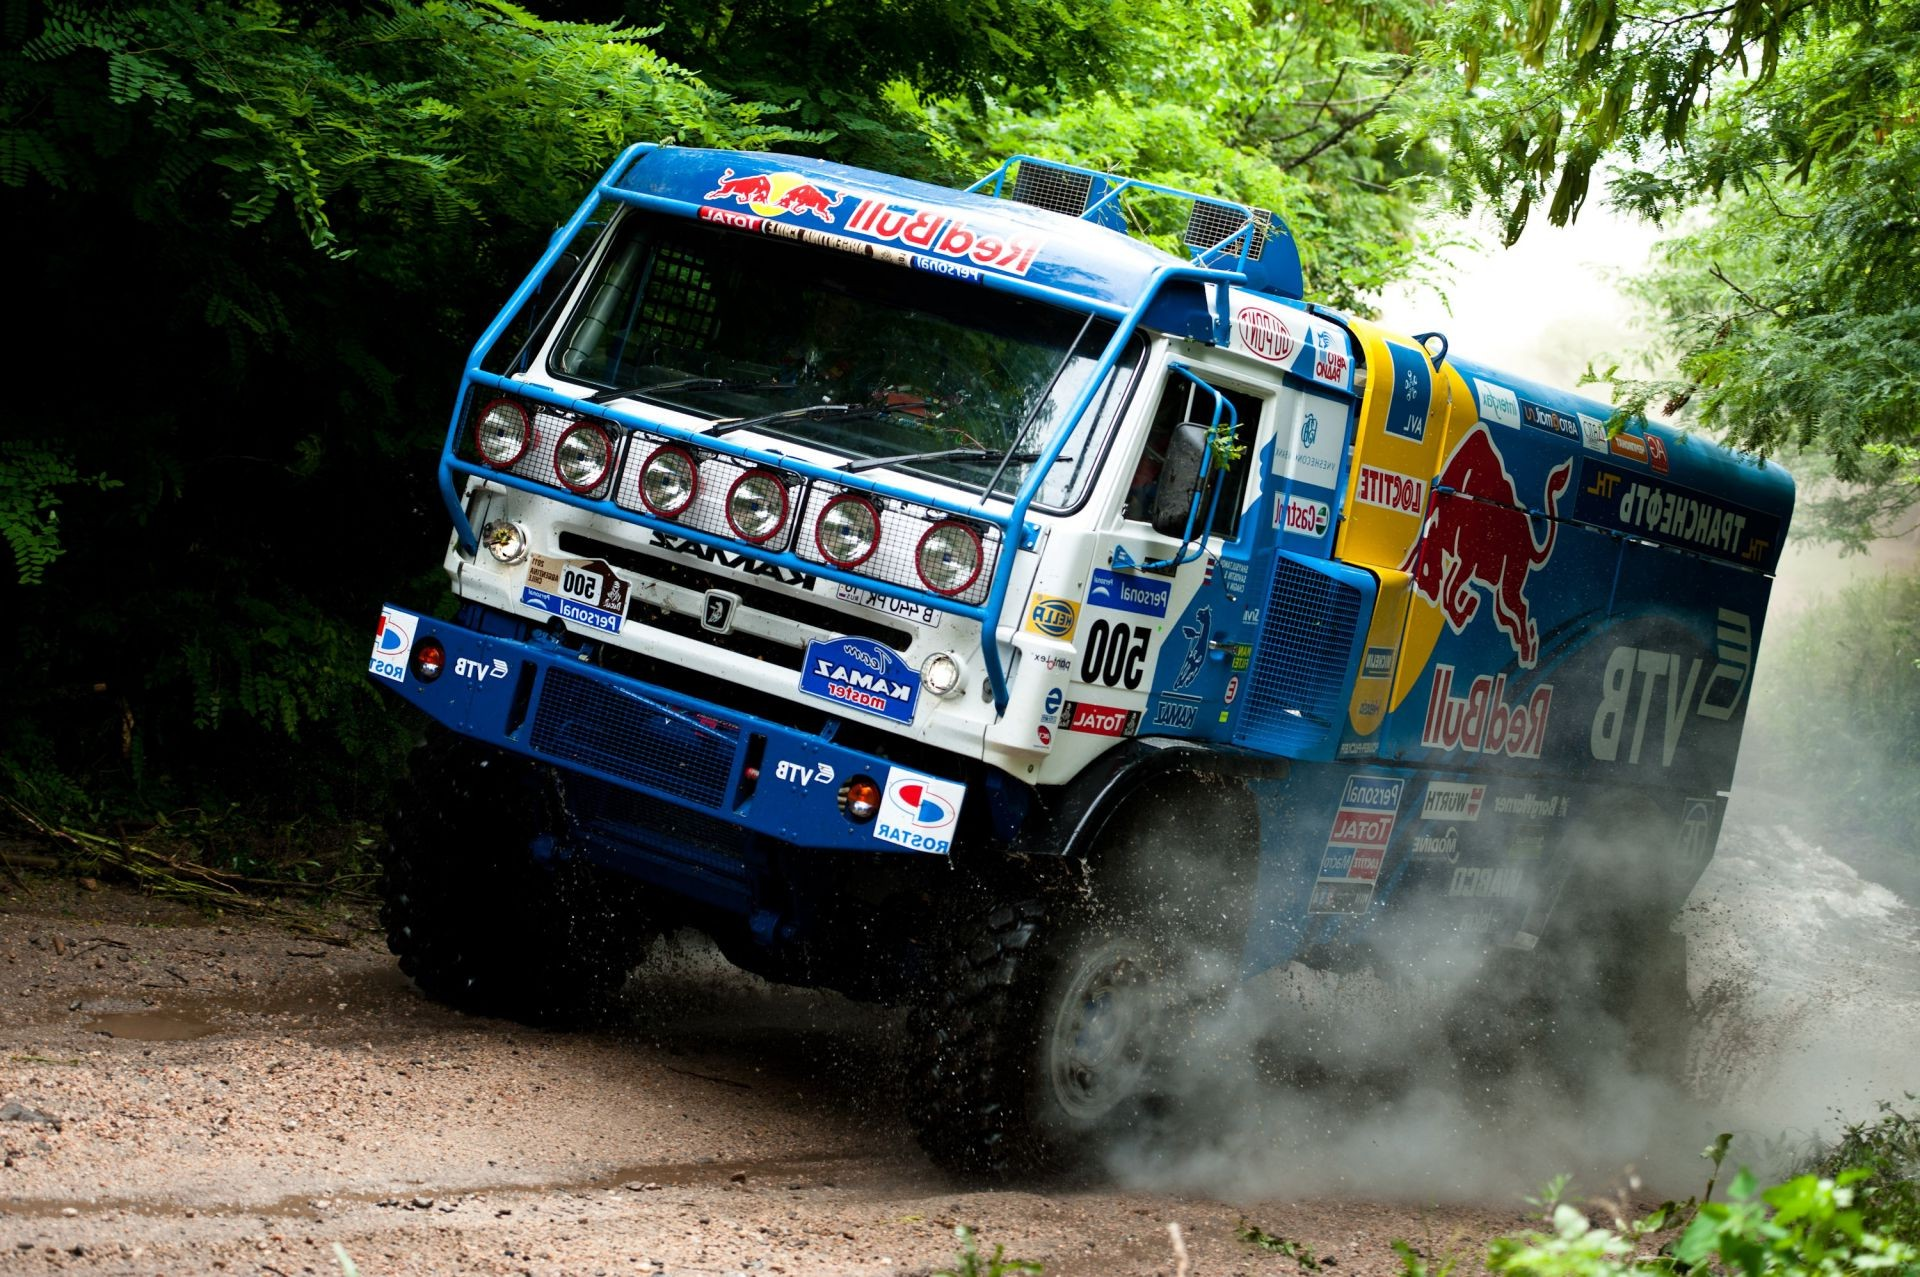 trucks rally vehicle race car competition hurry championship truck road fast transportation system action drive driver track dust